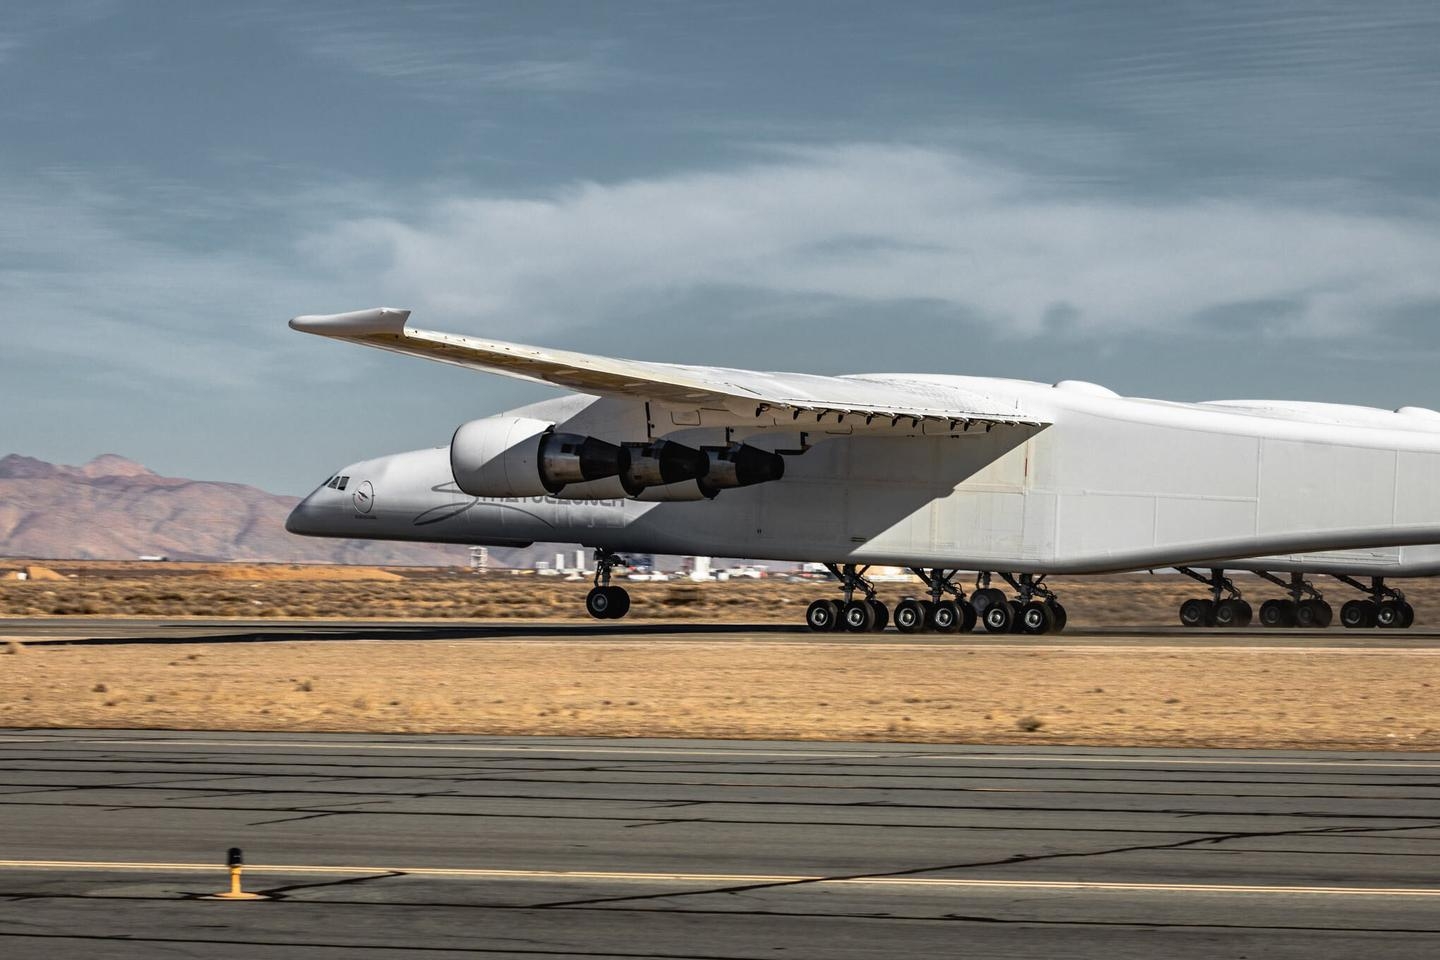 Stratolaunch's massive carrier plane on the runway during earlier testing